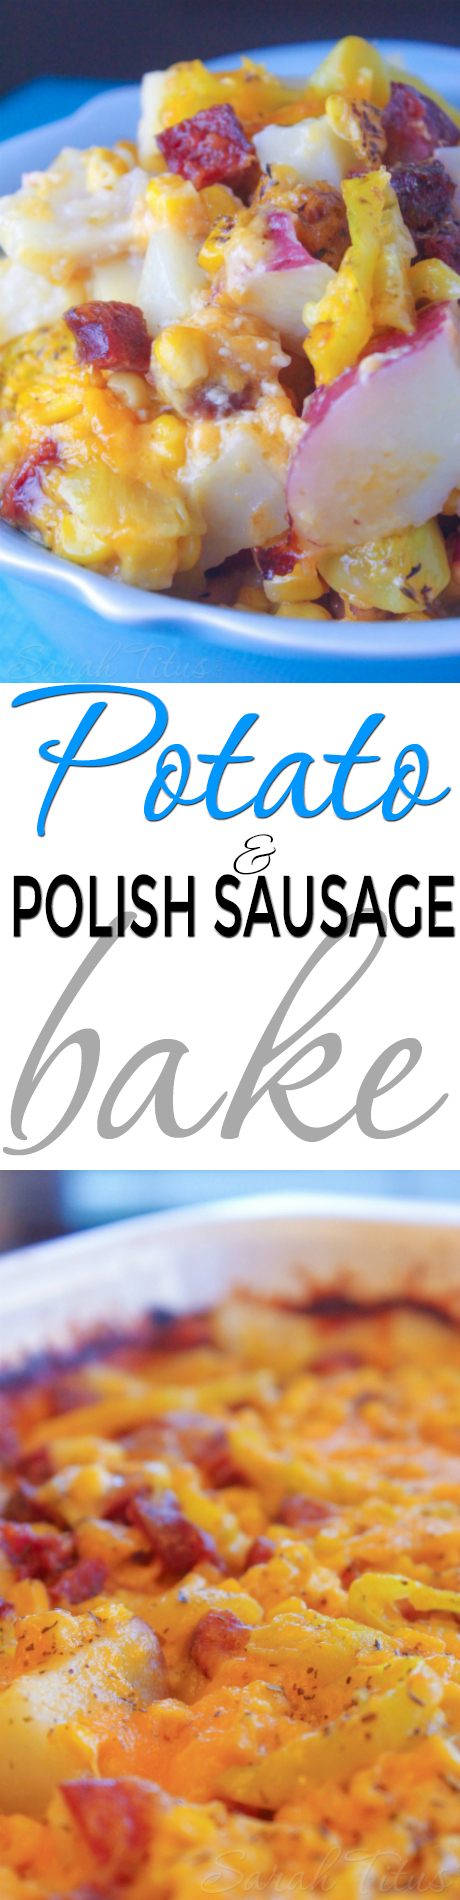 With just a few ingredients and 30 minutes, you could have dinner on the table in a jiffy with this deliciousPotato and Polish Sausage Bake.